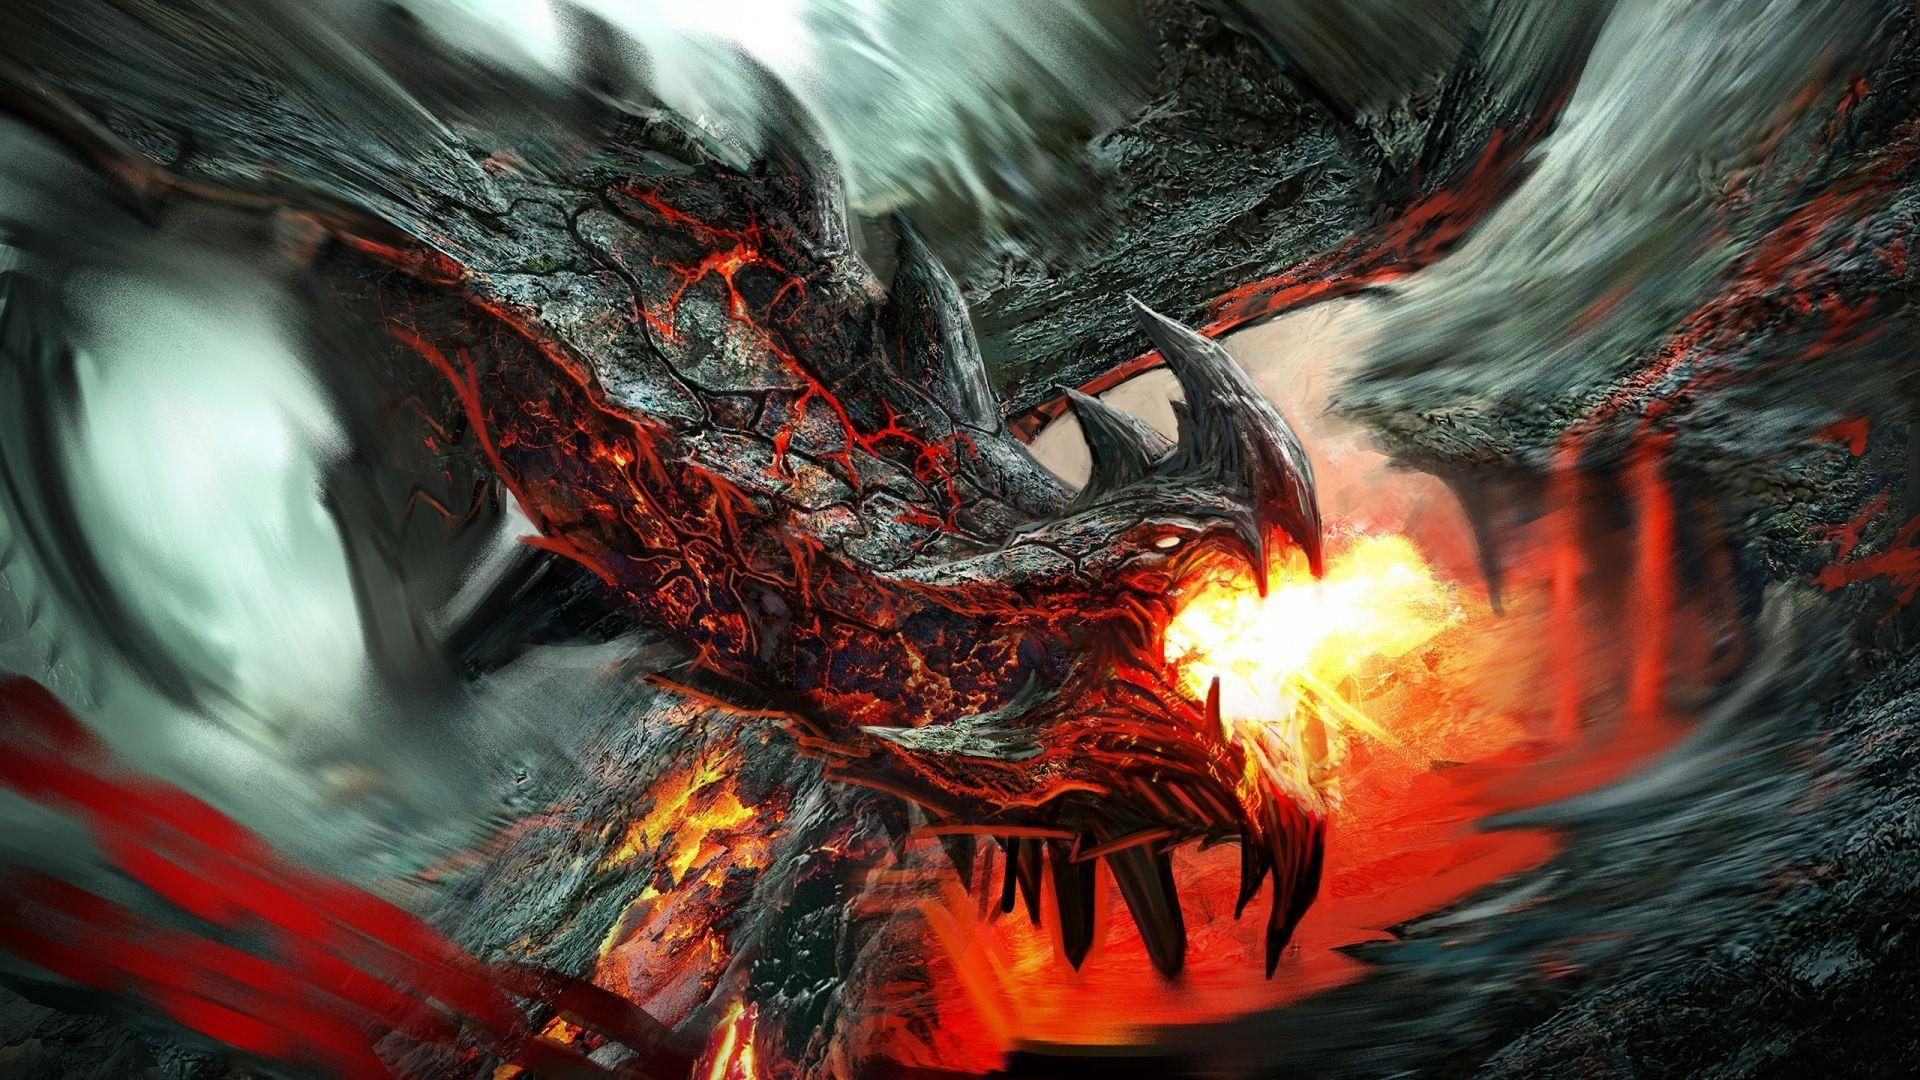 Dragon HD Wallpapers 1080p Group 84 At Wallpapers